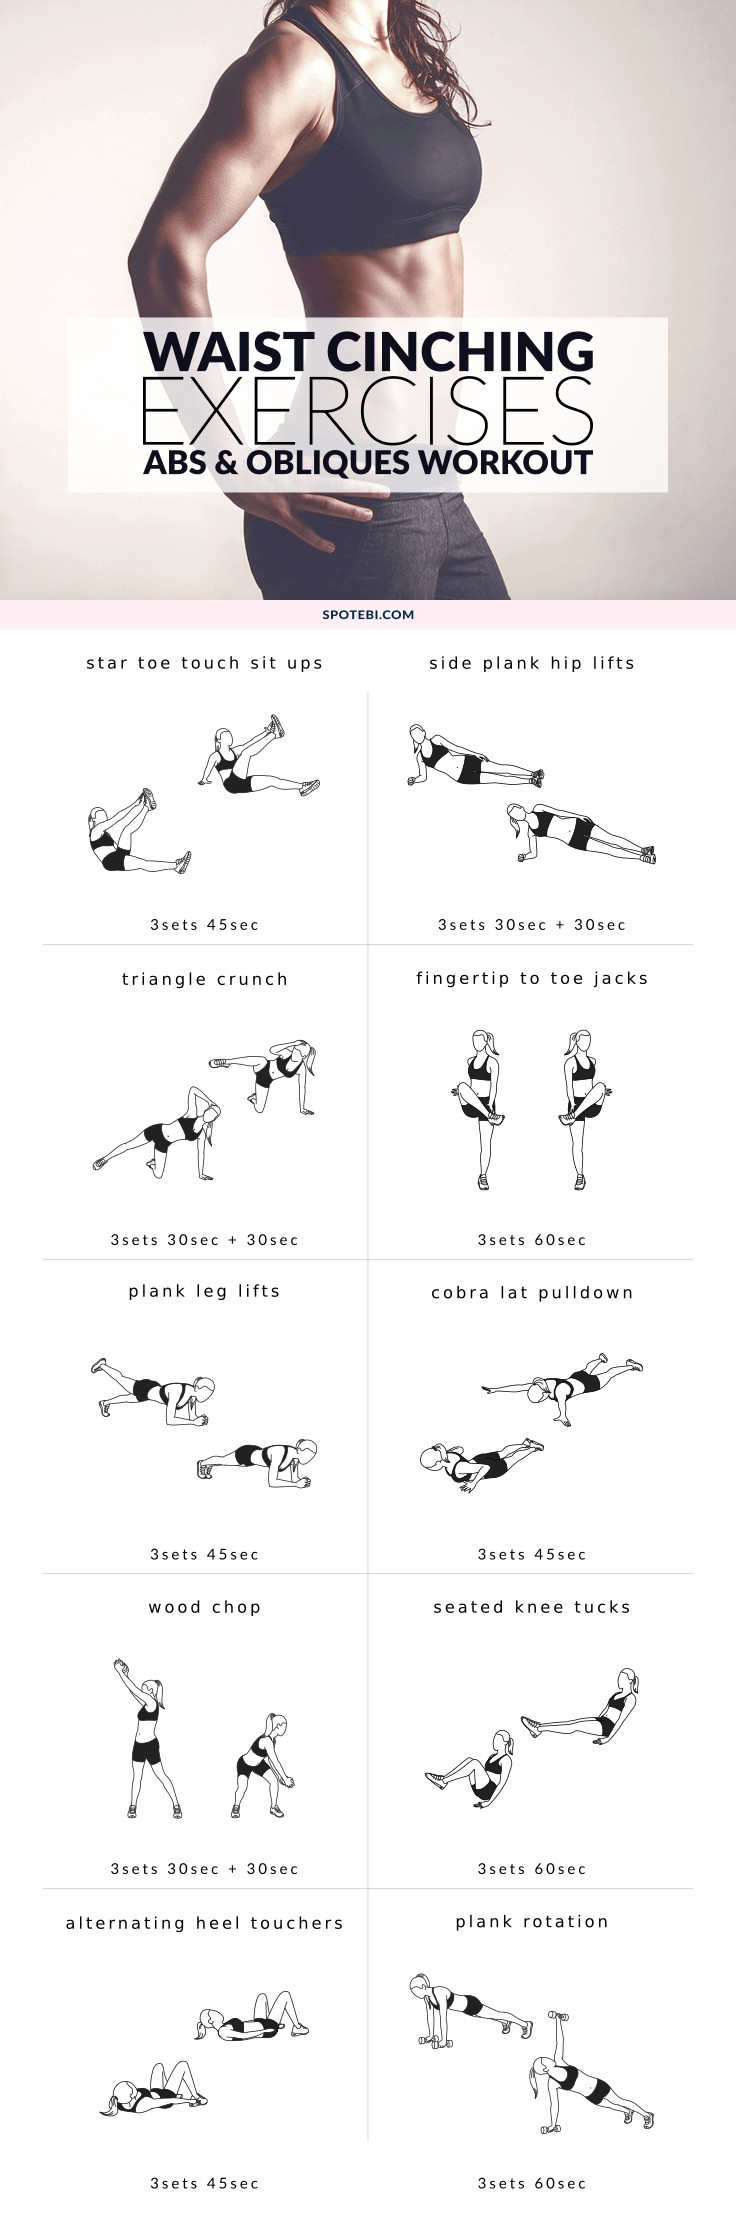 medium resolution of work your abs and obliques with these core exercises for women a 30 minute